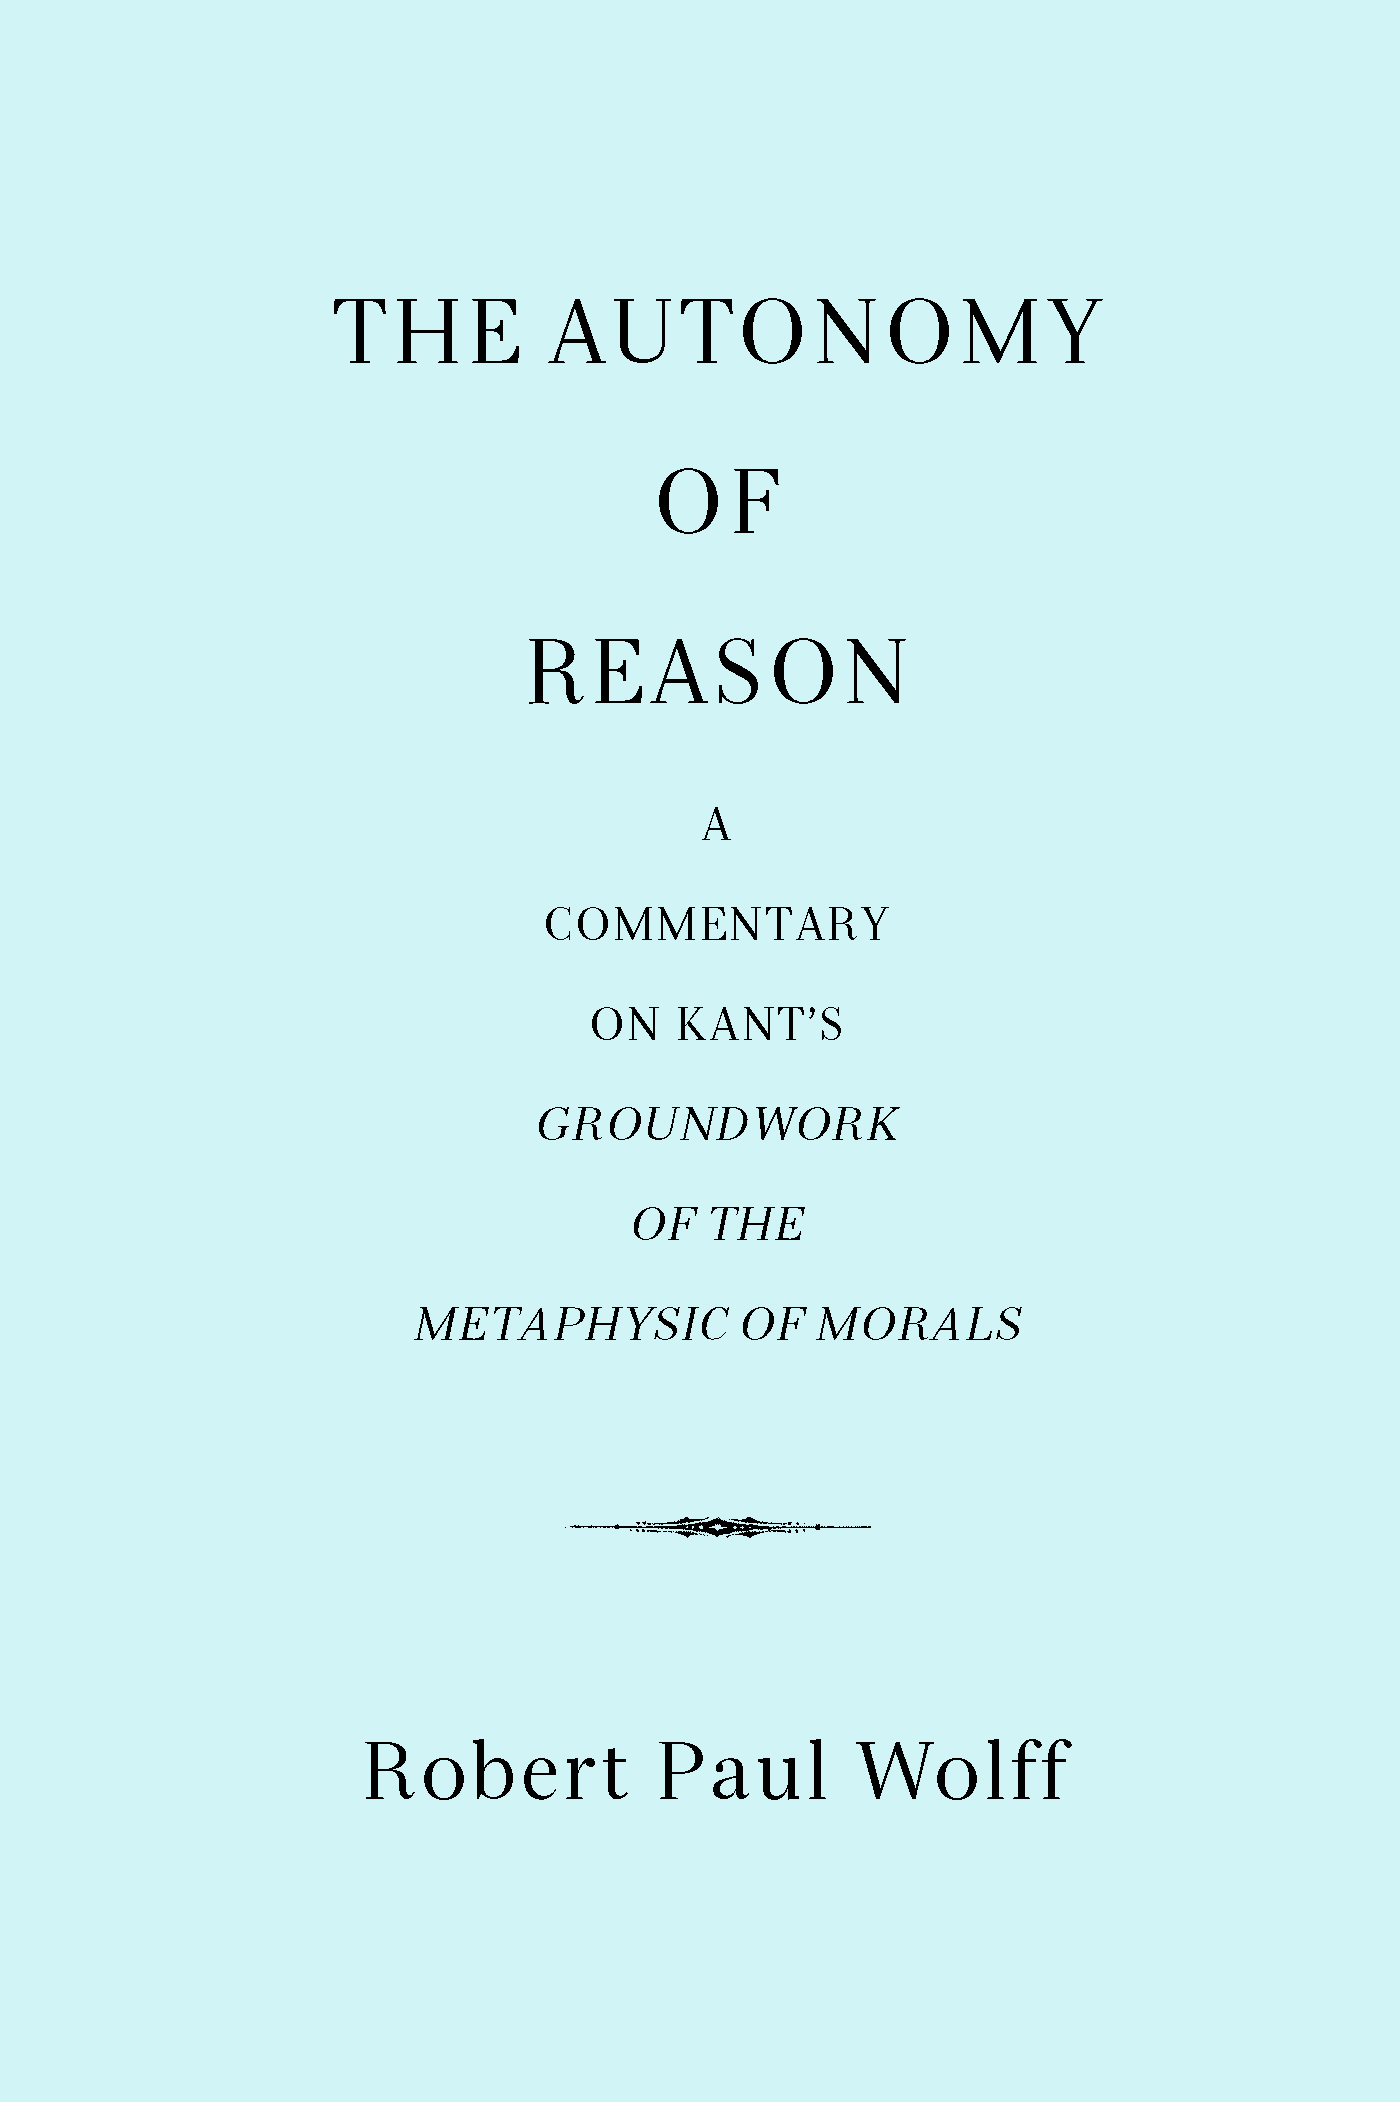 The Autonomy of Reason: A Commentary on Kant's Groundwork of the Metaphysic of Morals